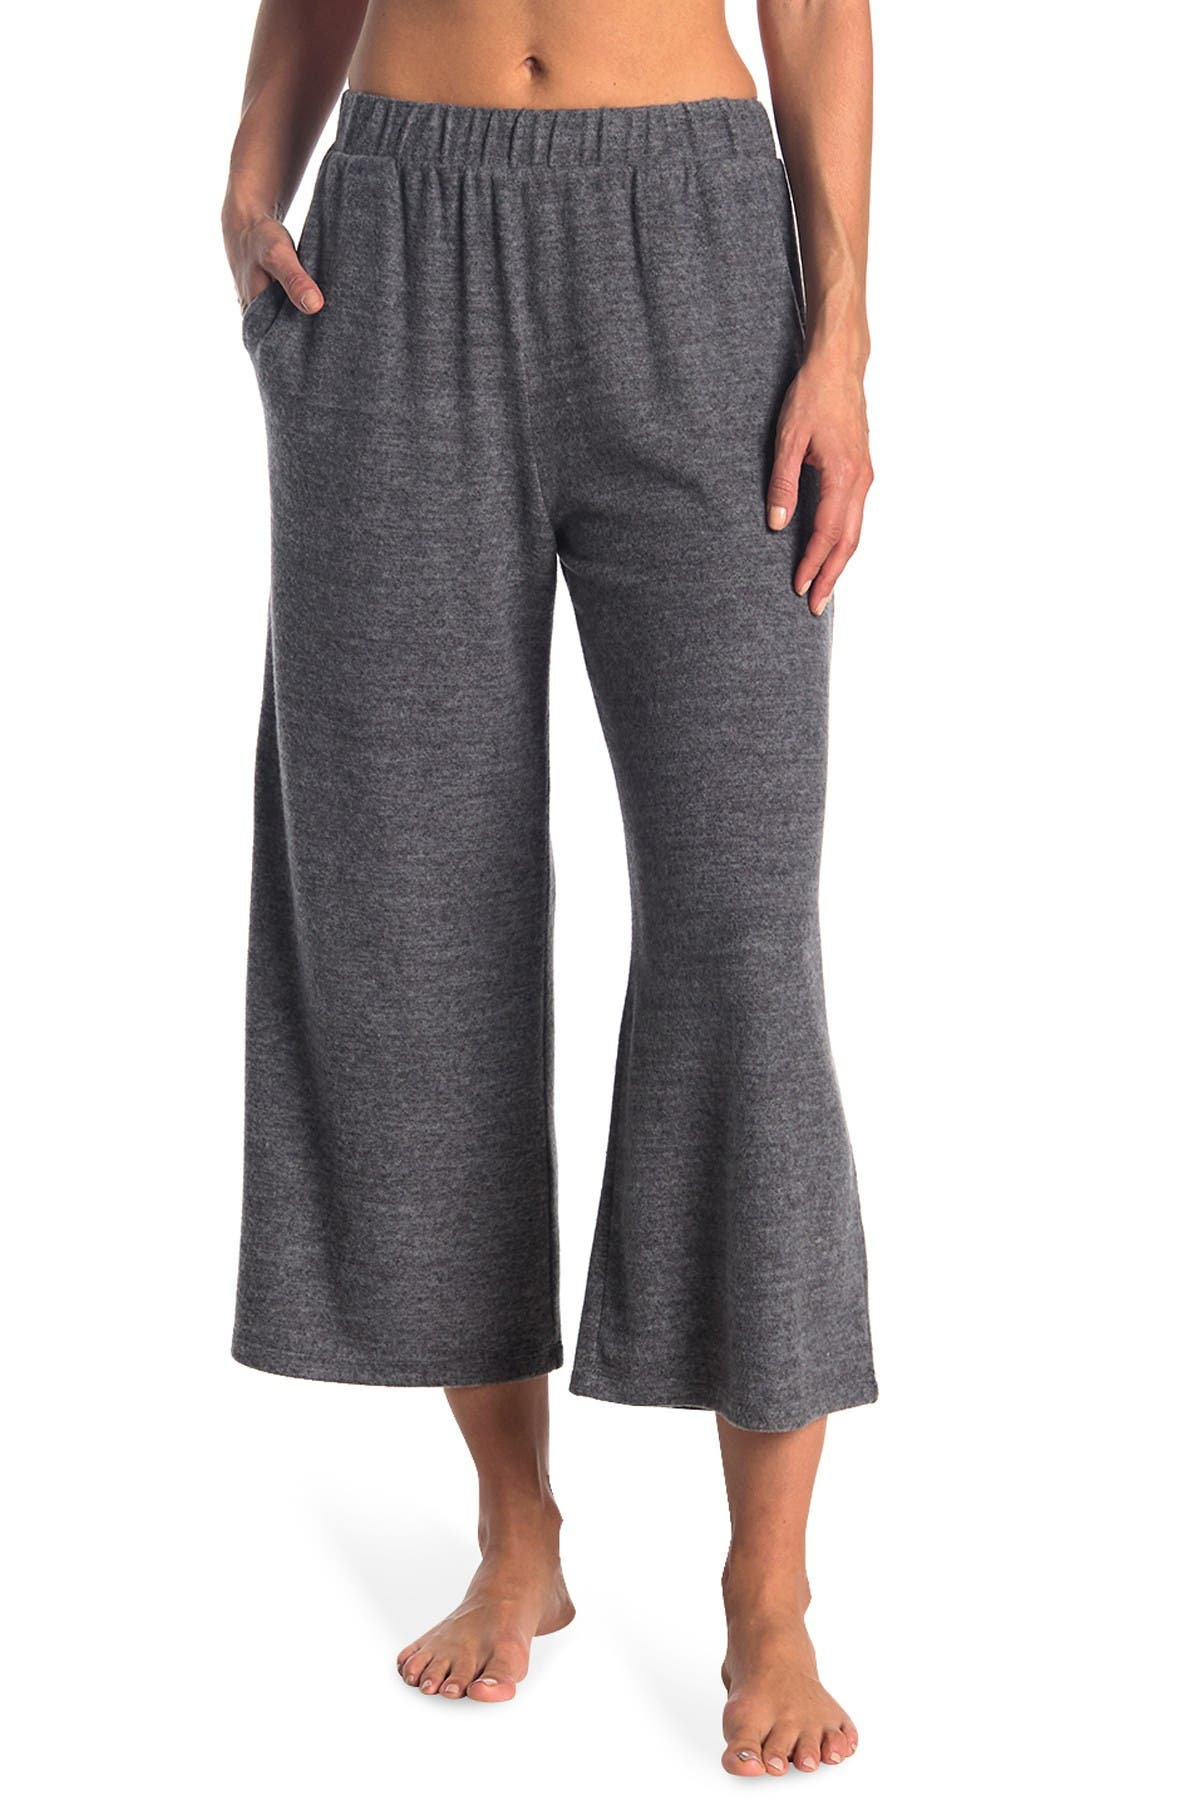 Image of ECLAIR Cozy Wide Leg Pants